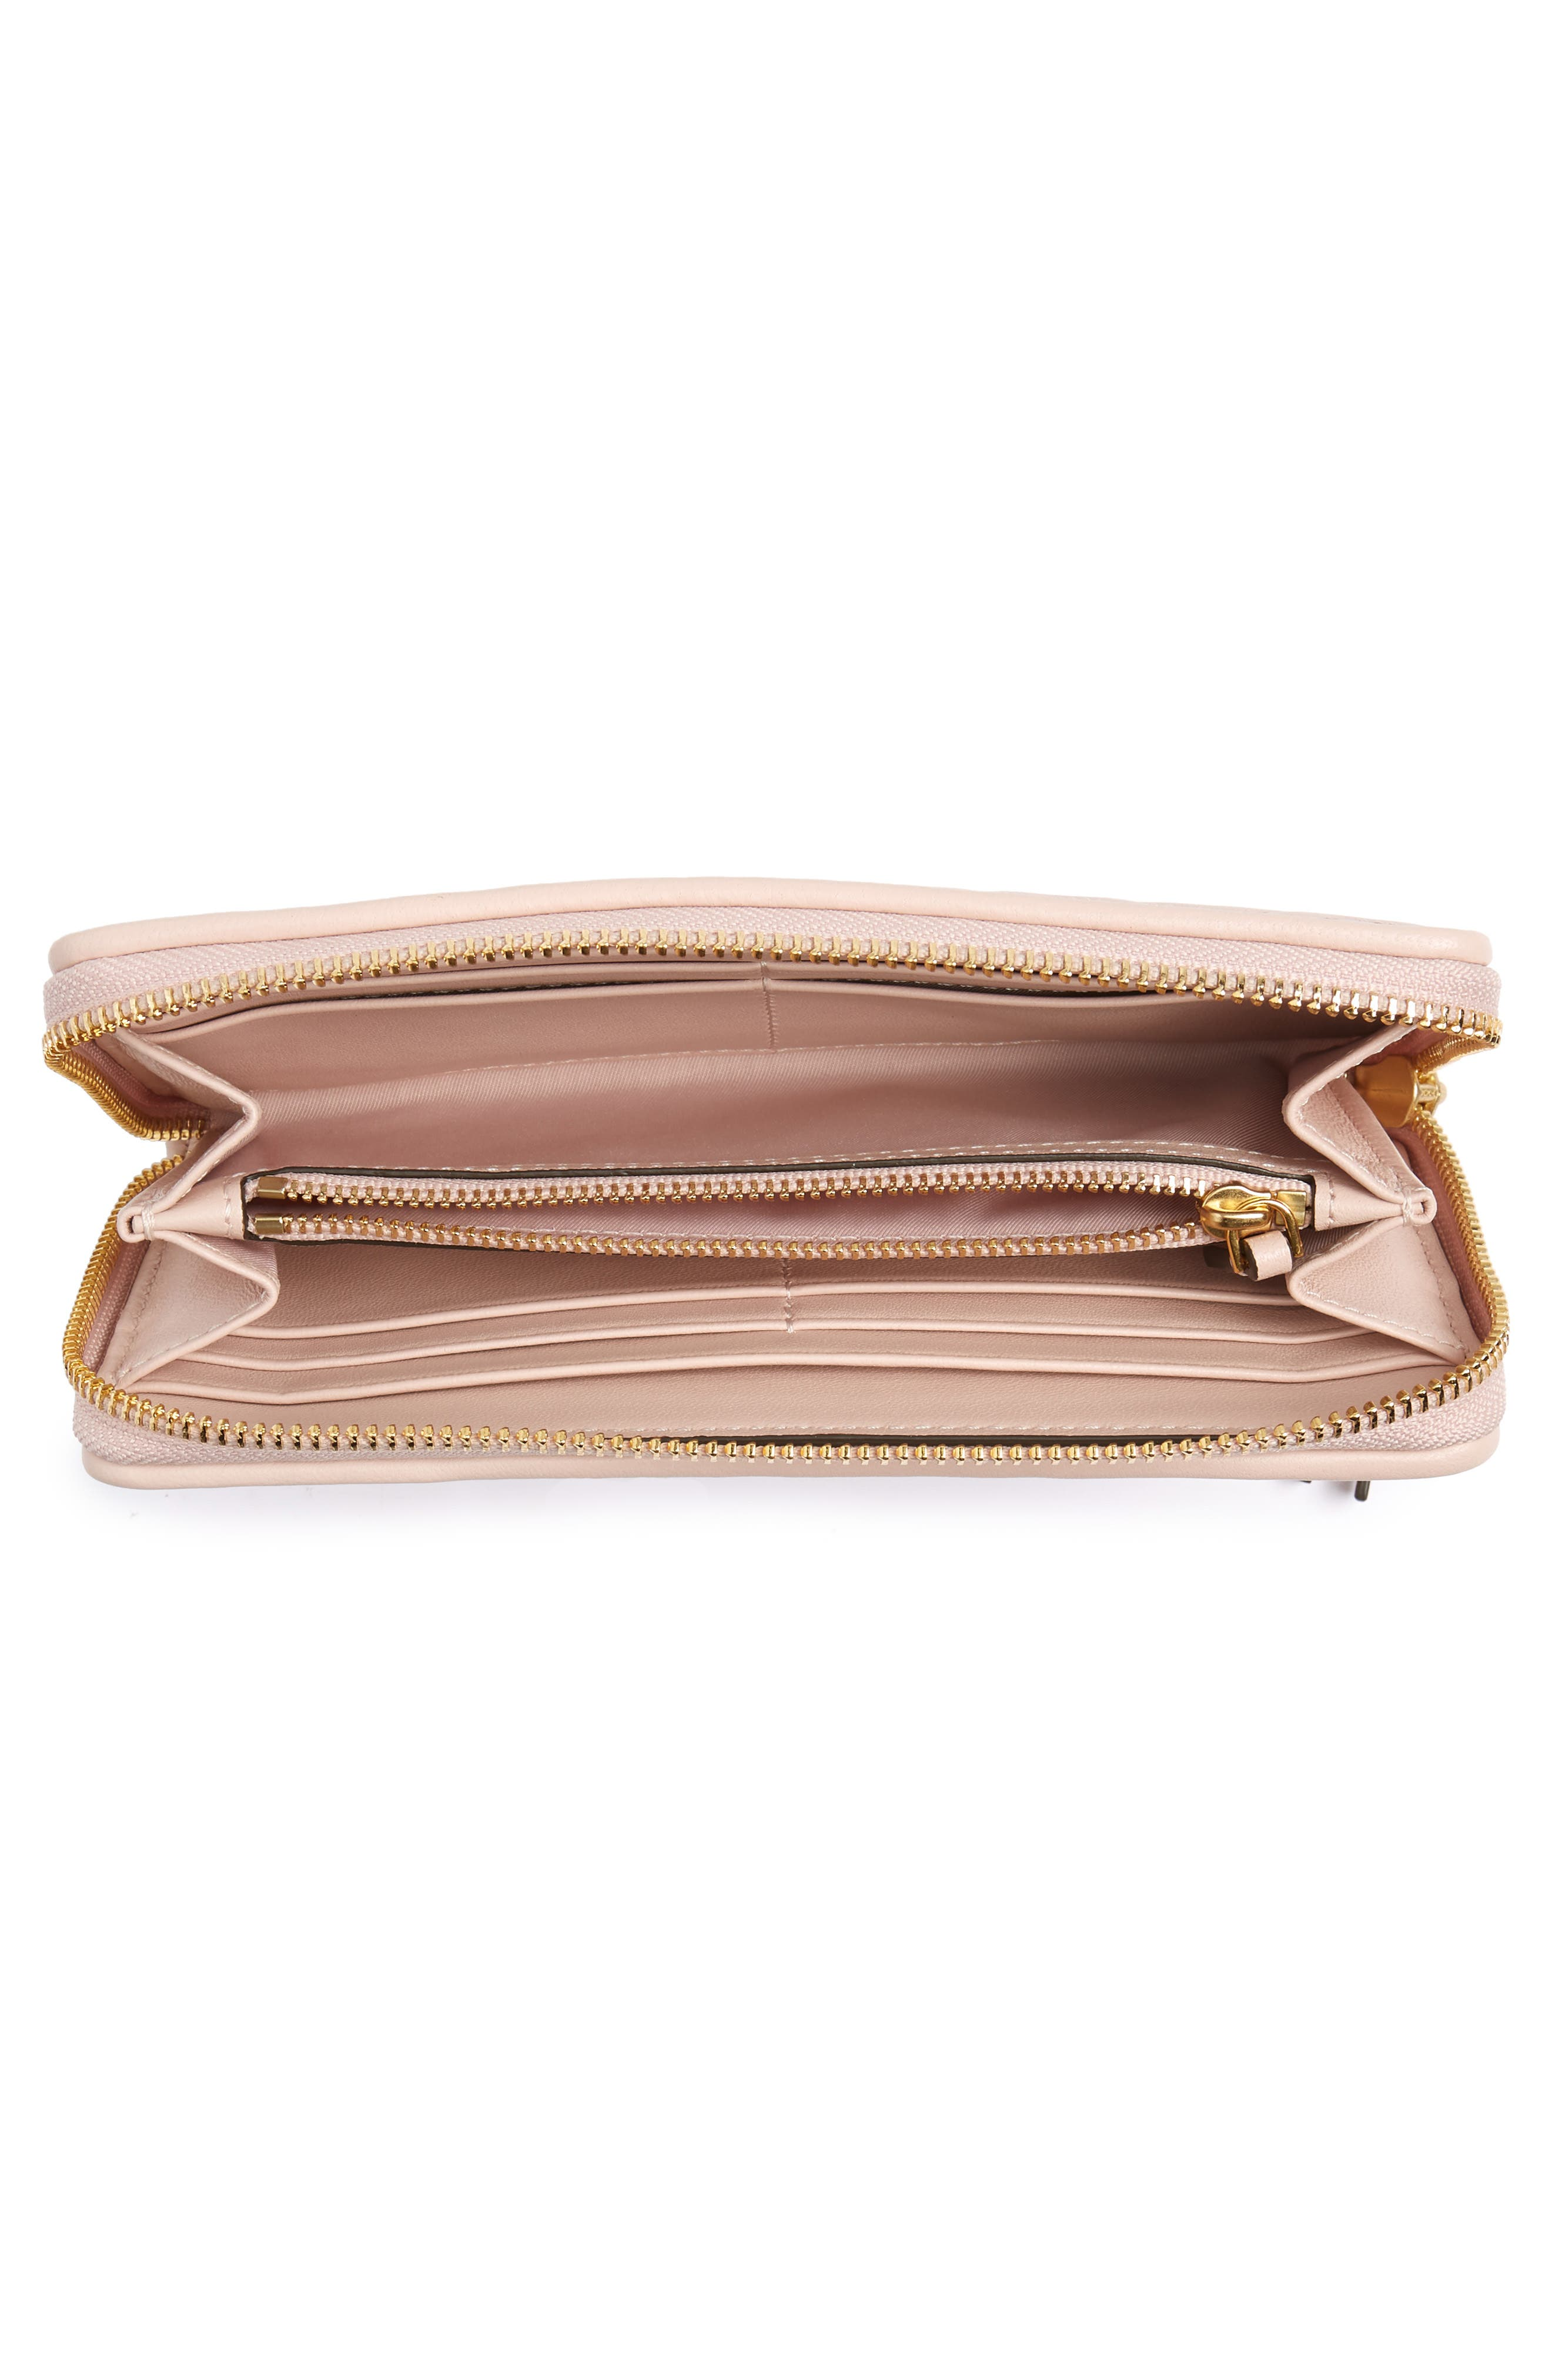 Fleming Leather Zip Around Wallet,                             Alternate thumbnail 4, color,                             SHELL PINK